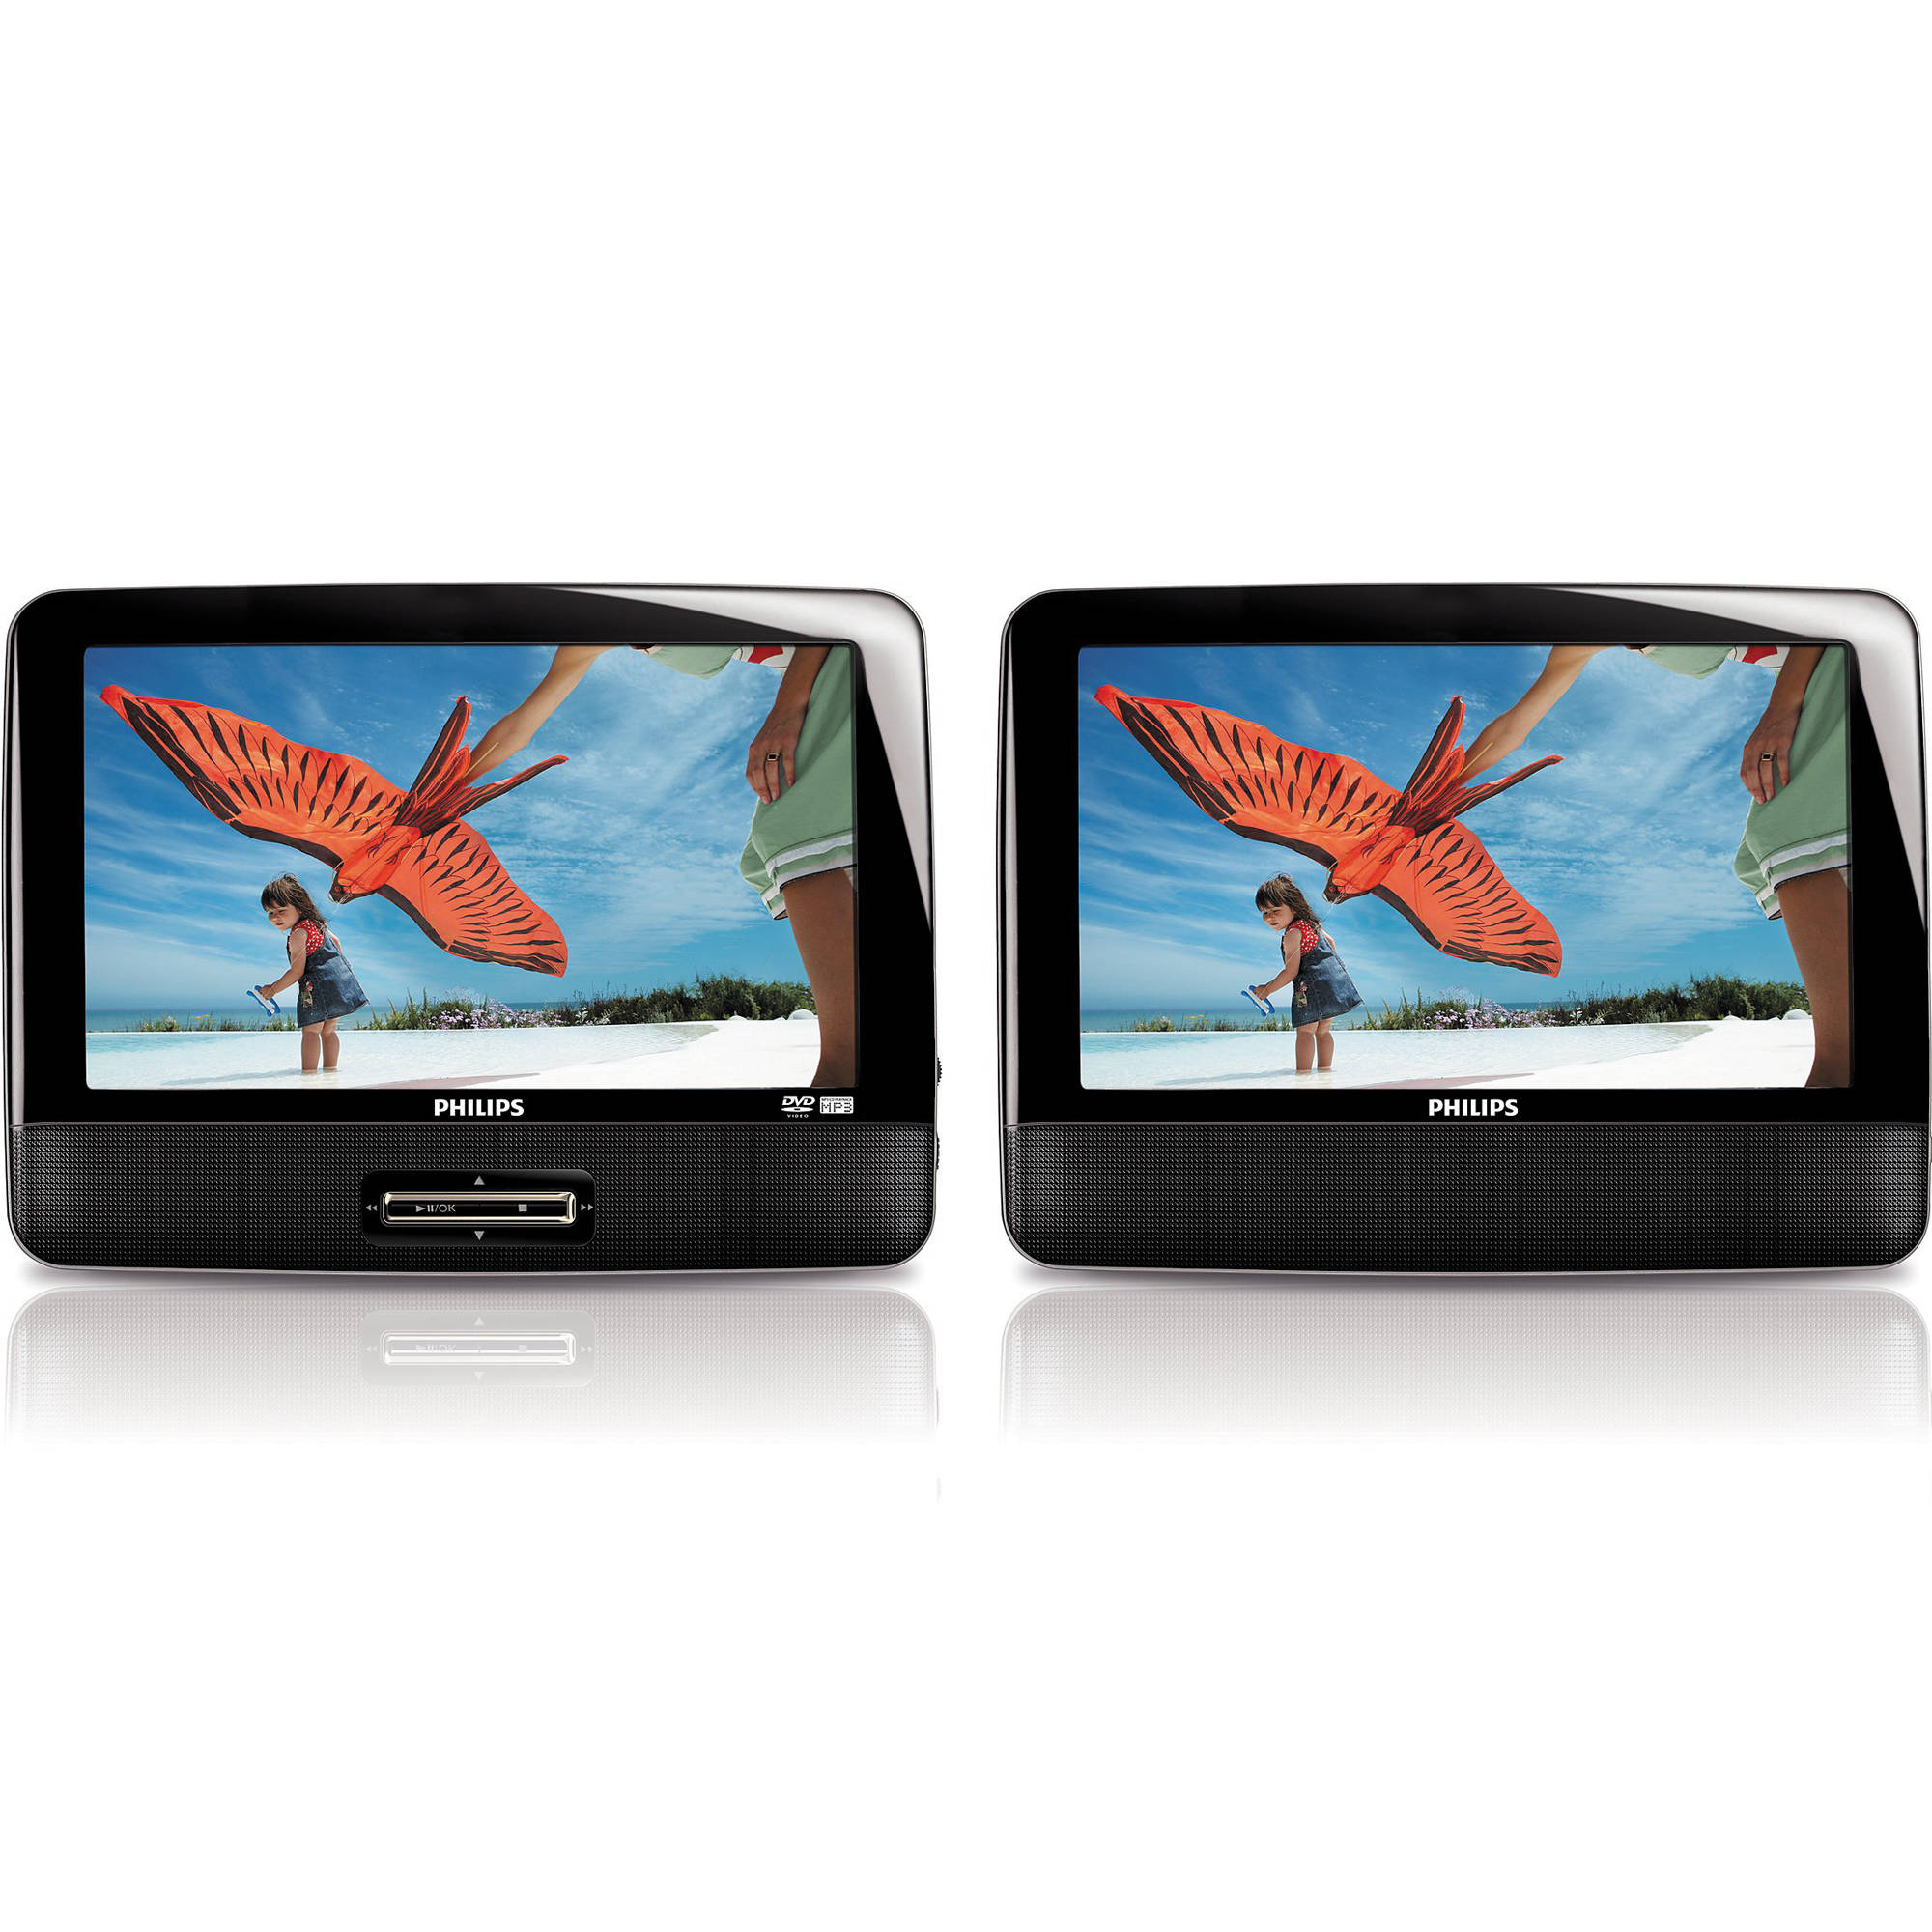 Philips 9inch Dual Screen Portable Dvd Player Black Pd9017